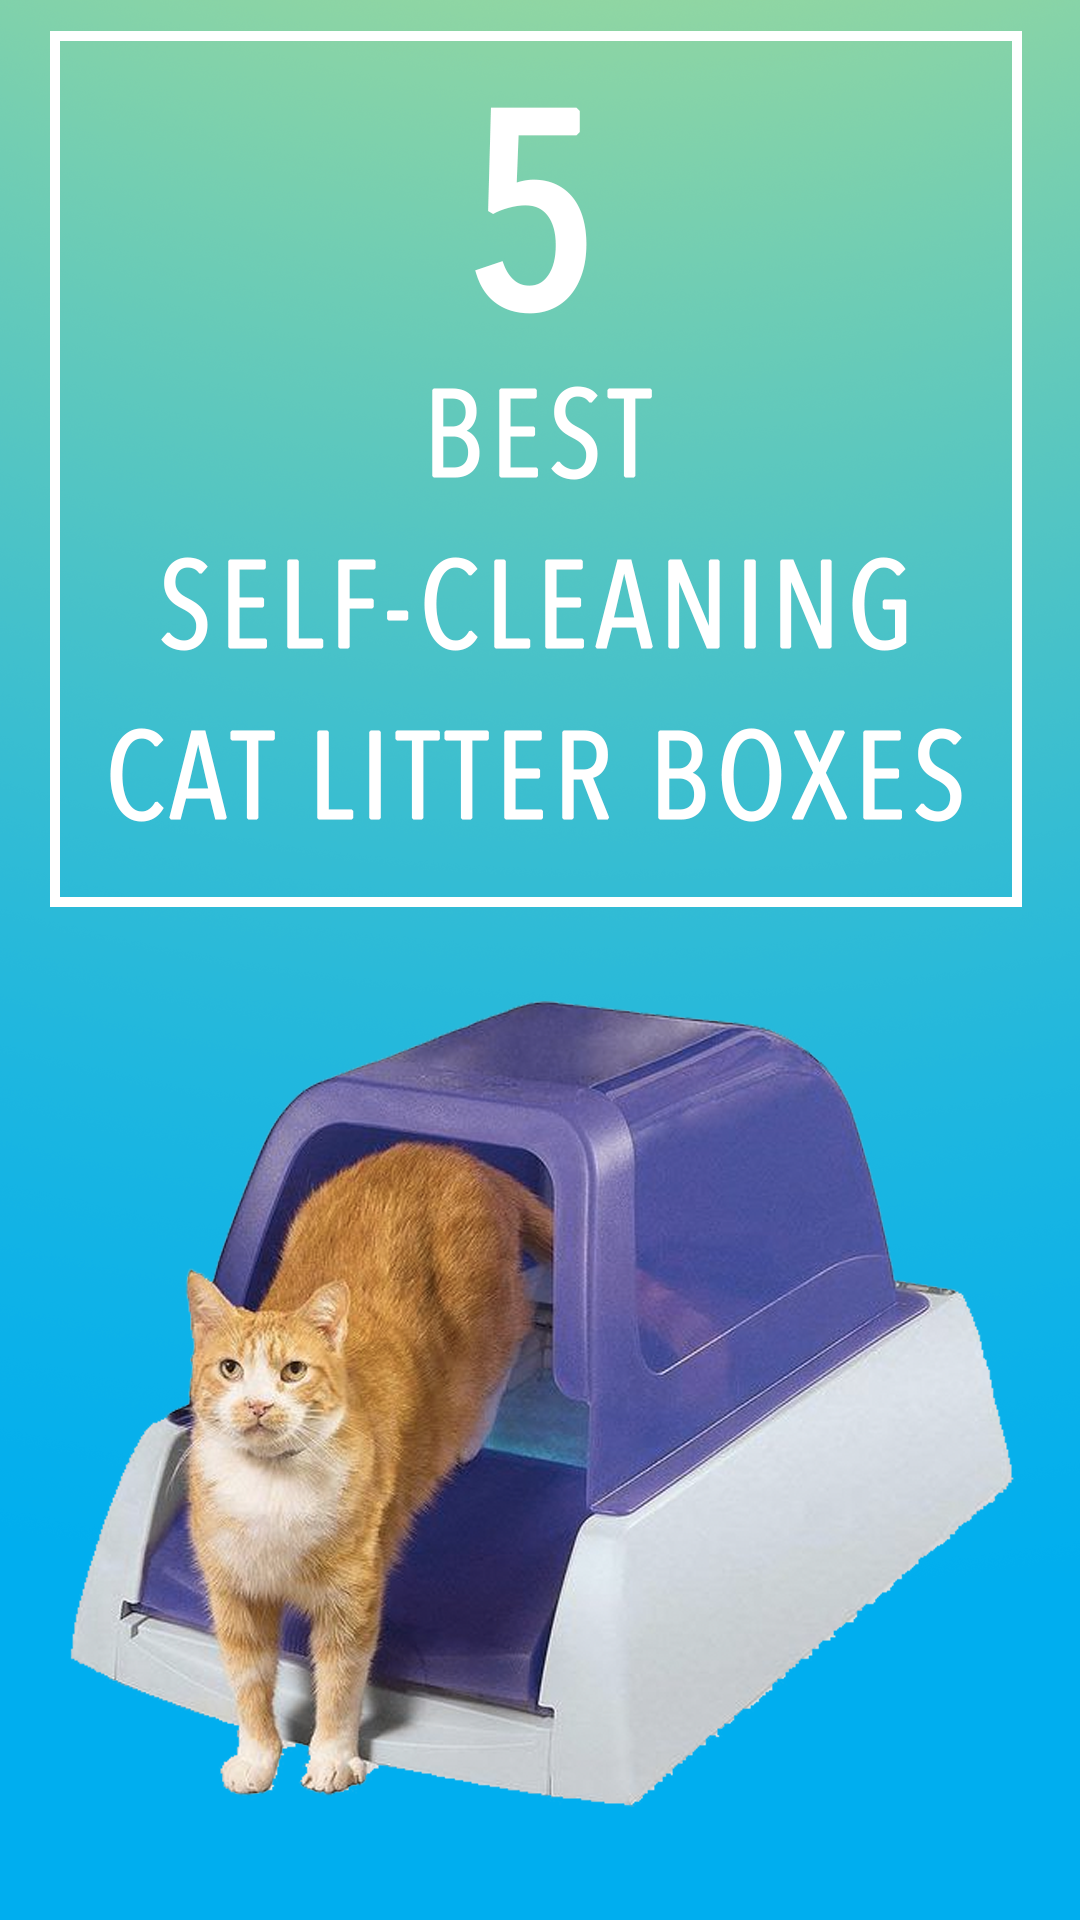 5 Of The Best Self Cleaning Cat Litter Boxes In The Uk Best Small Pets Cat Litter Box Litter Box